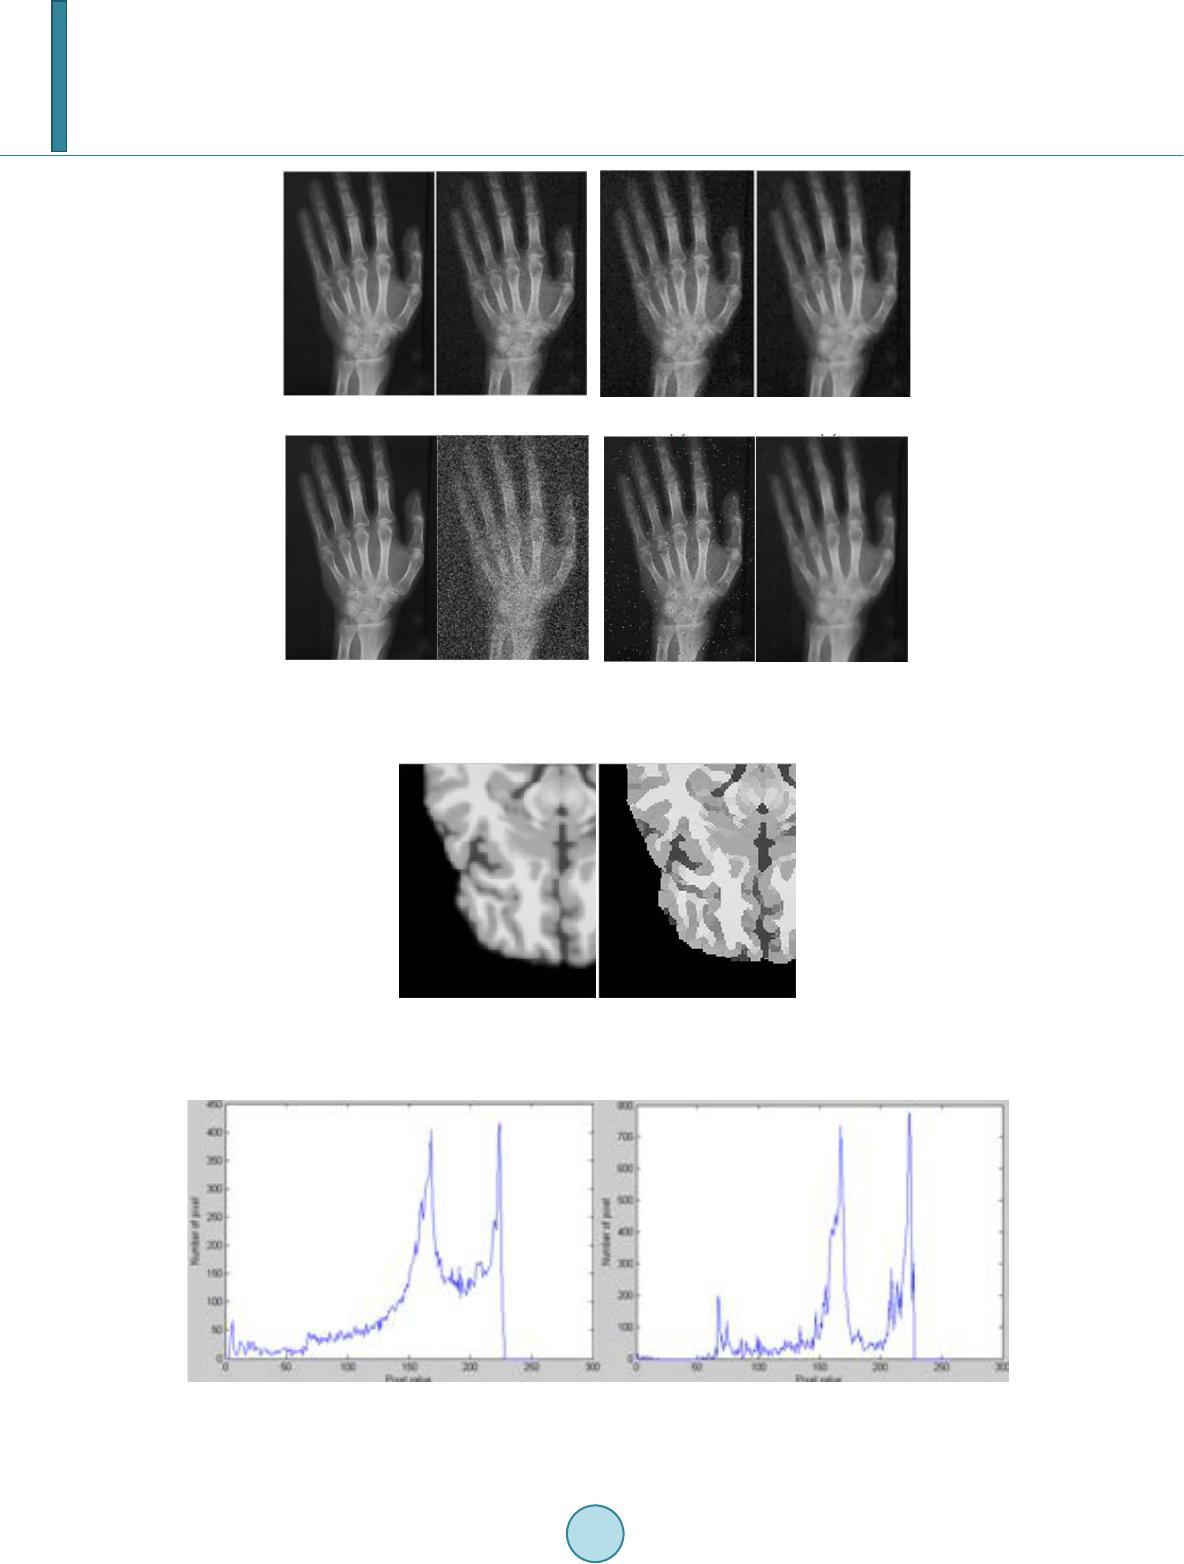 Implementation Of Shock Filter For Digital X Ray Image Processing